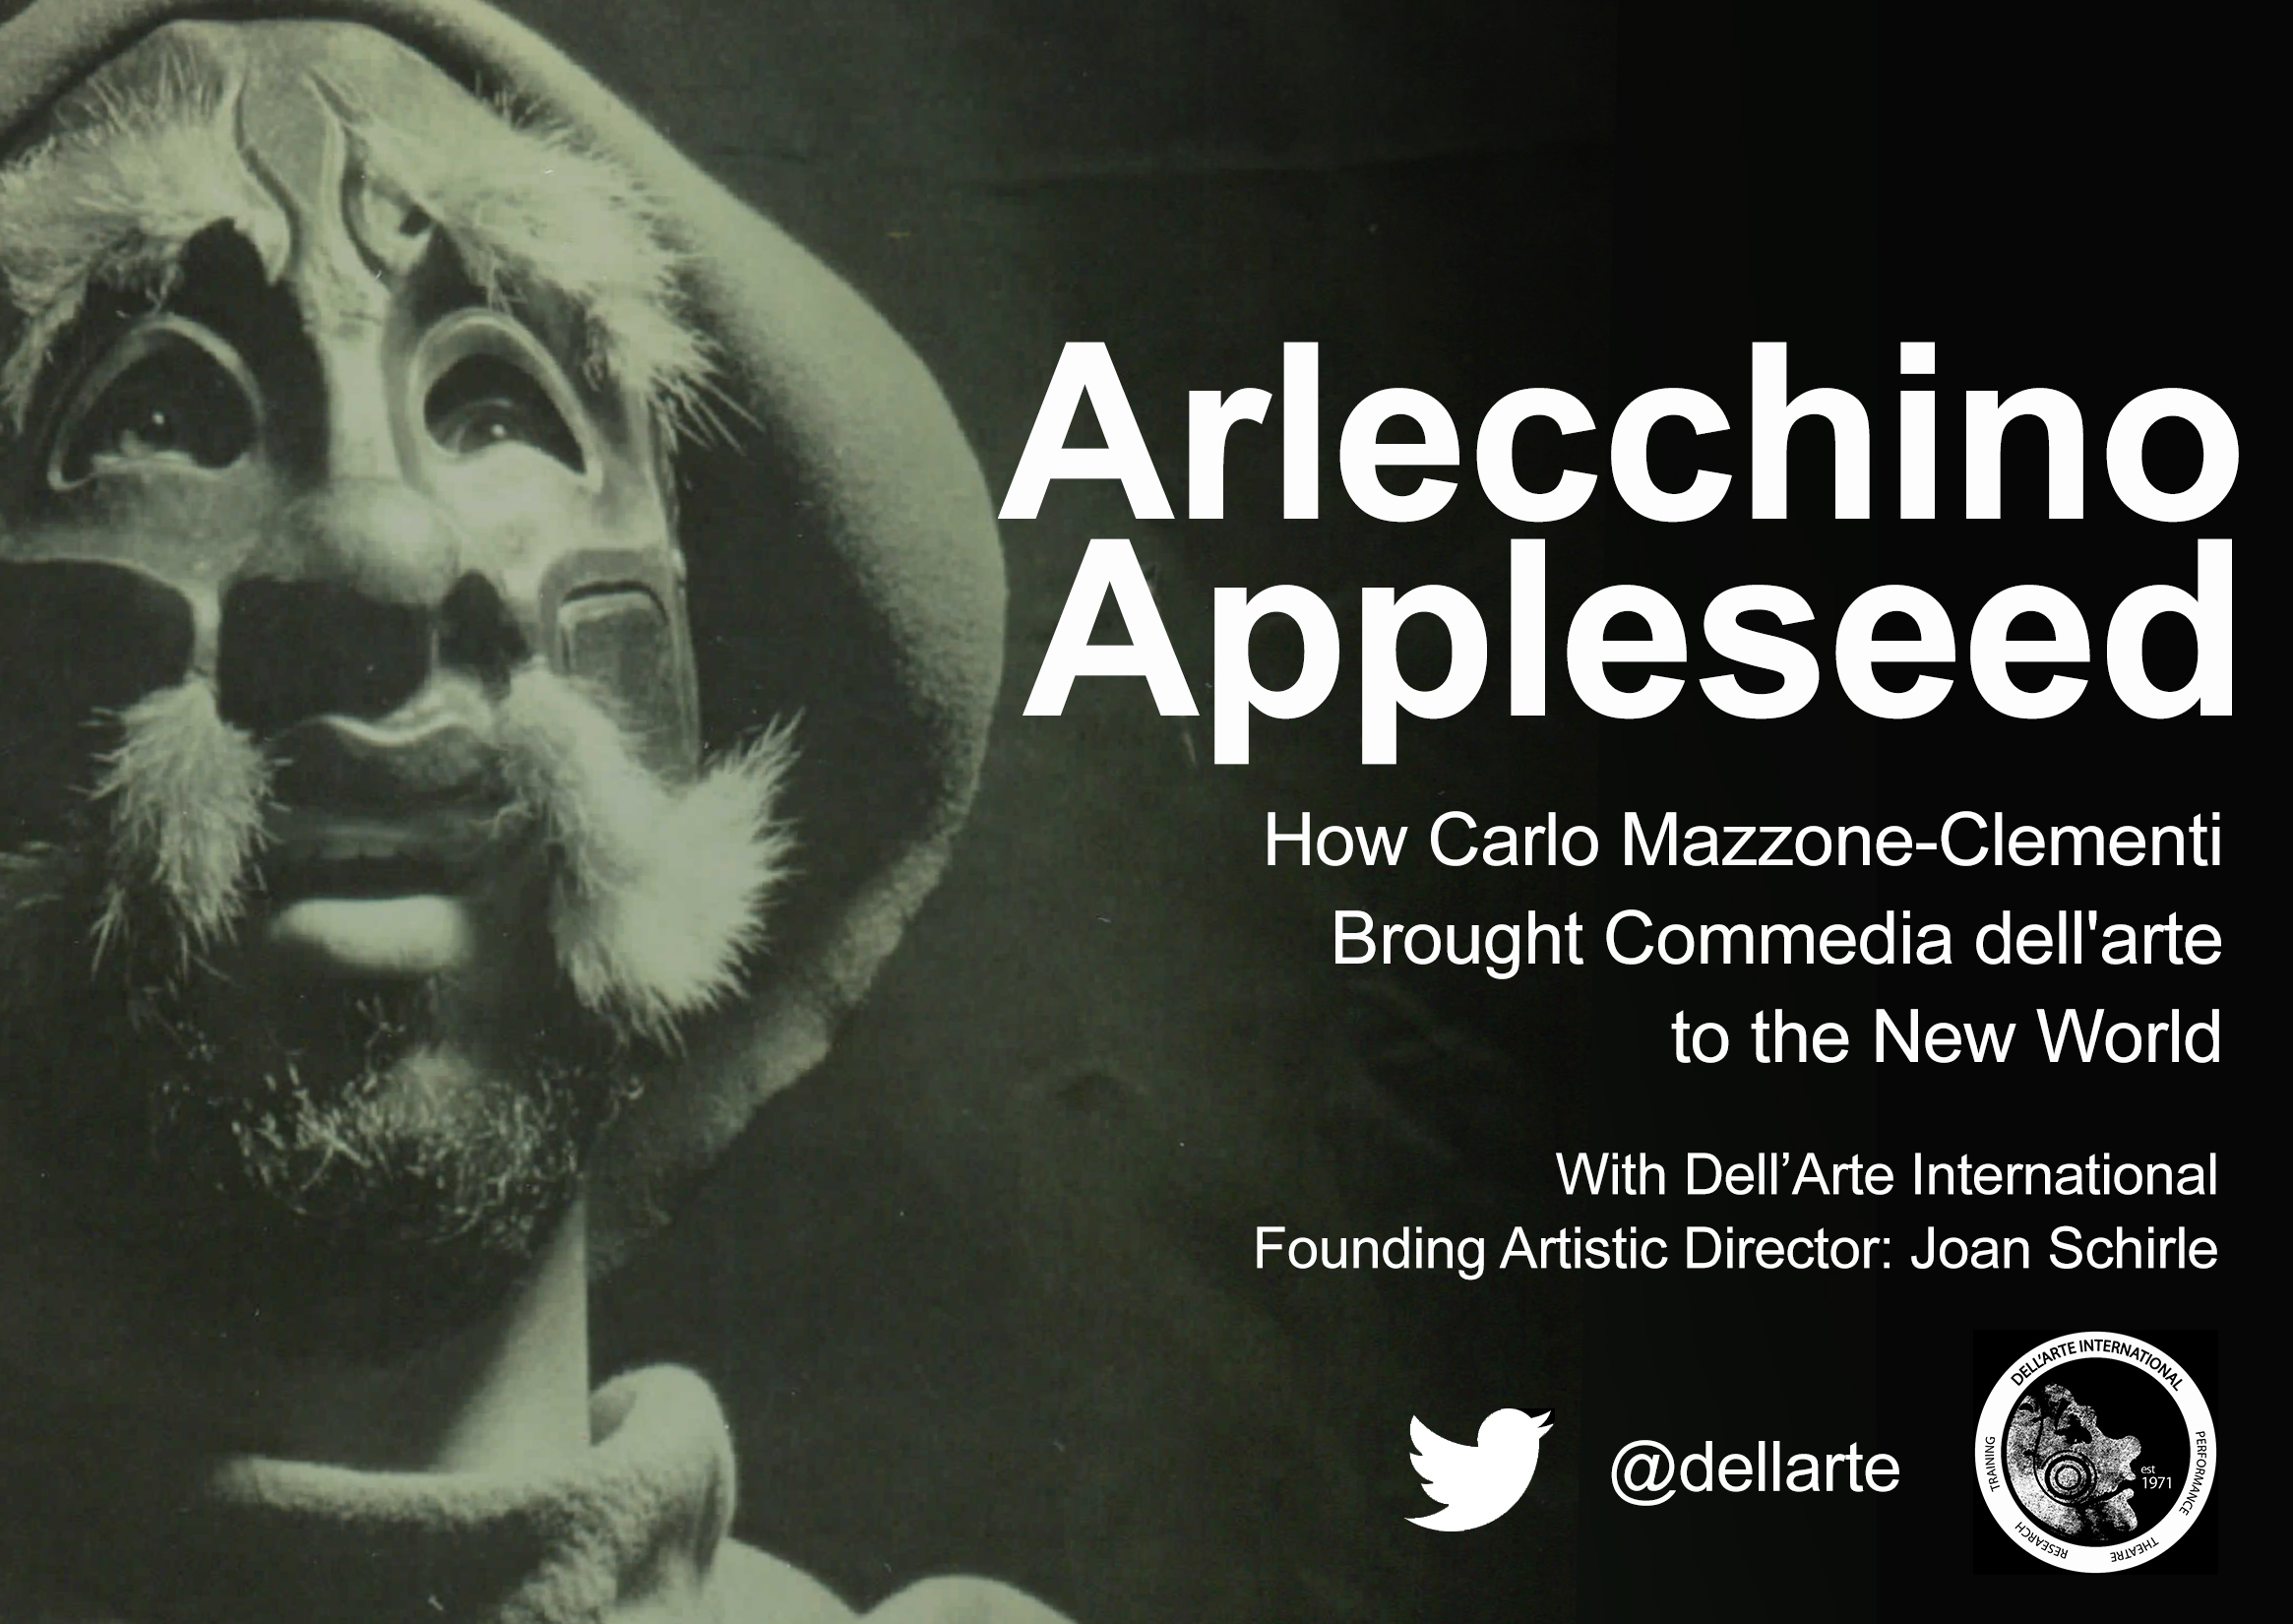 Commedia Dell'arte Word Meaning Arlecchino Appleseed How Carlo Mazzone Clementi Brought Commedia